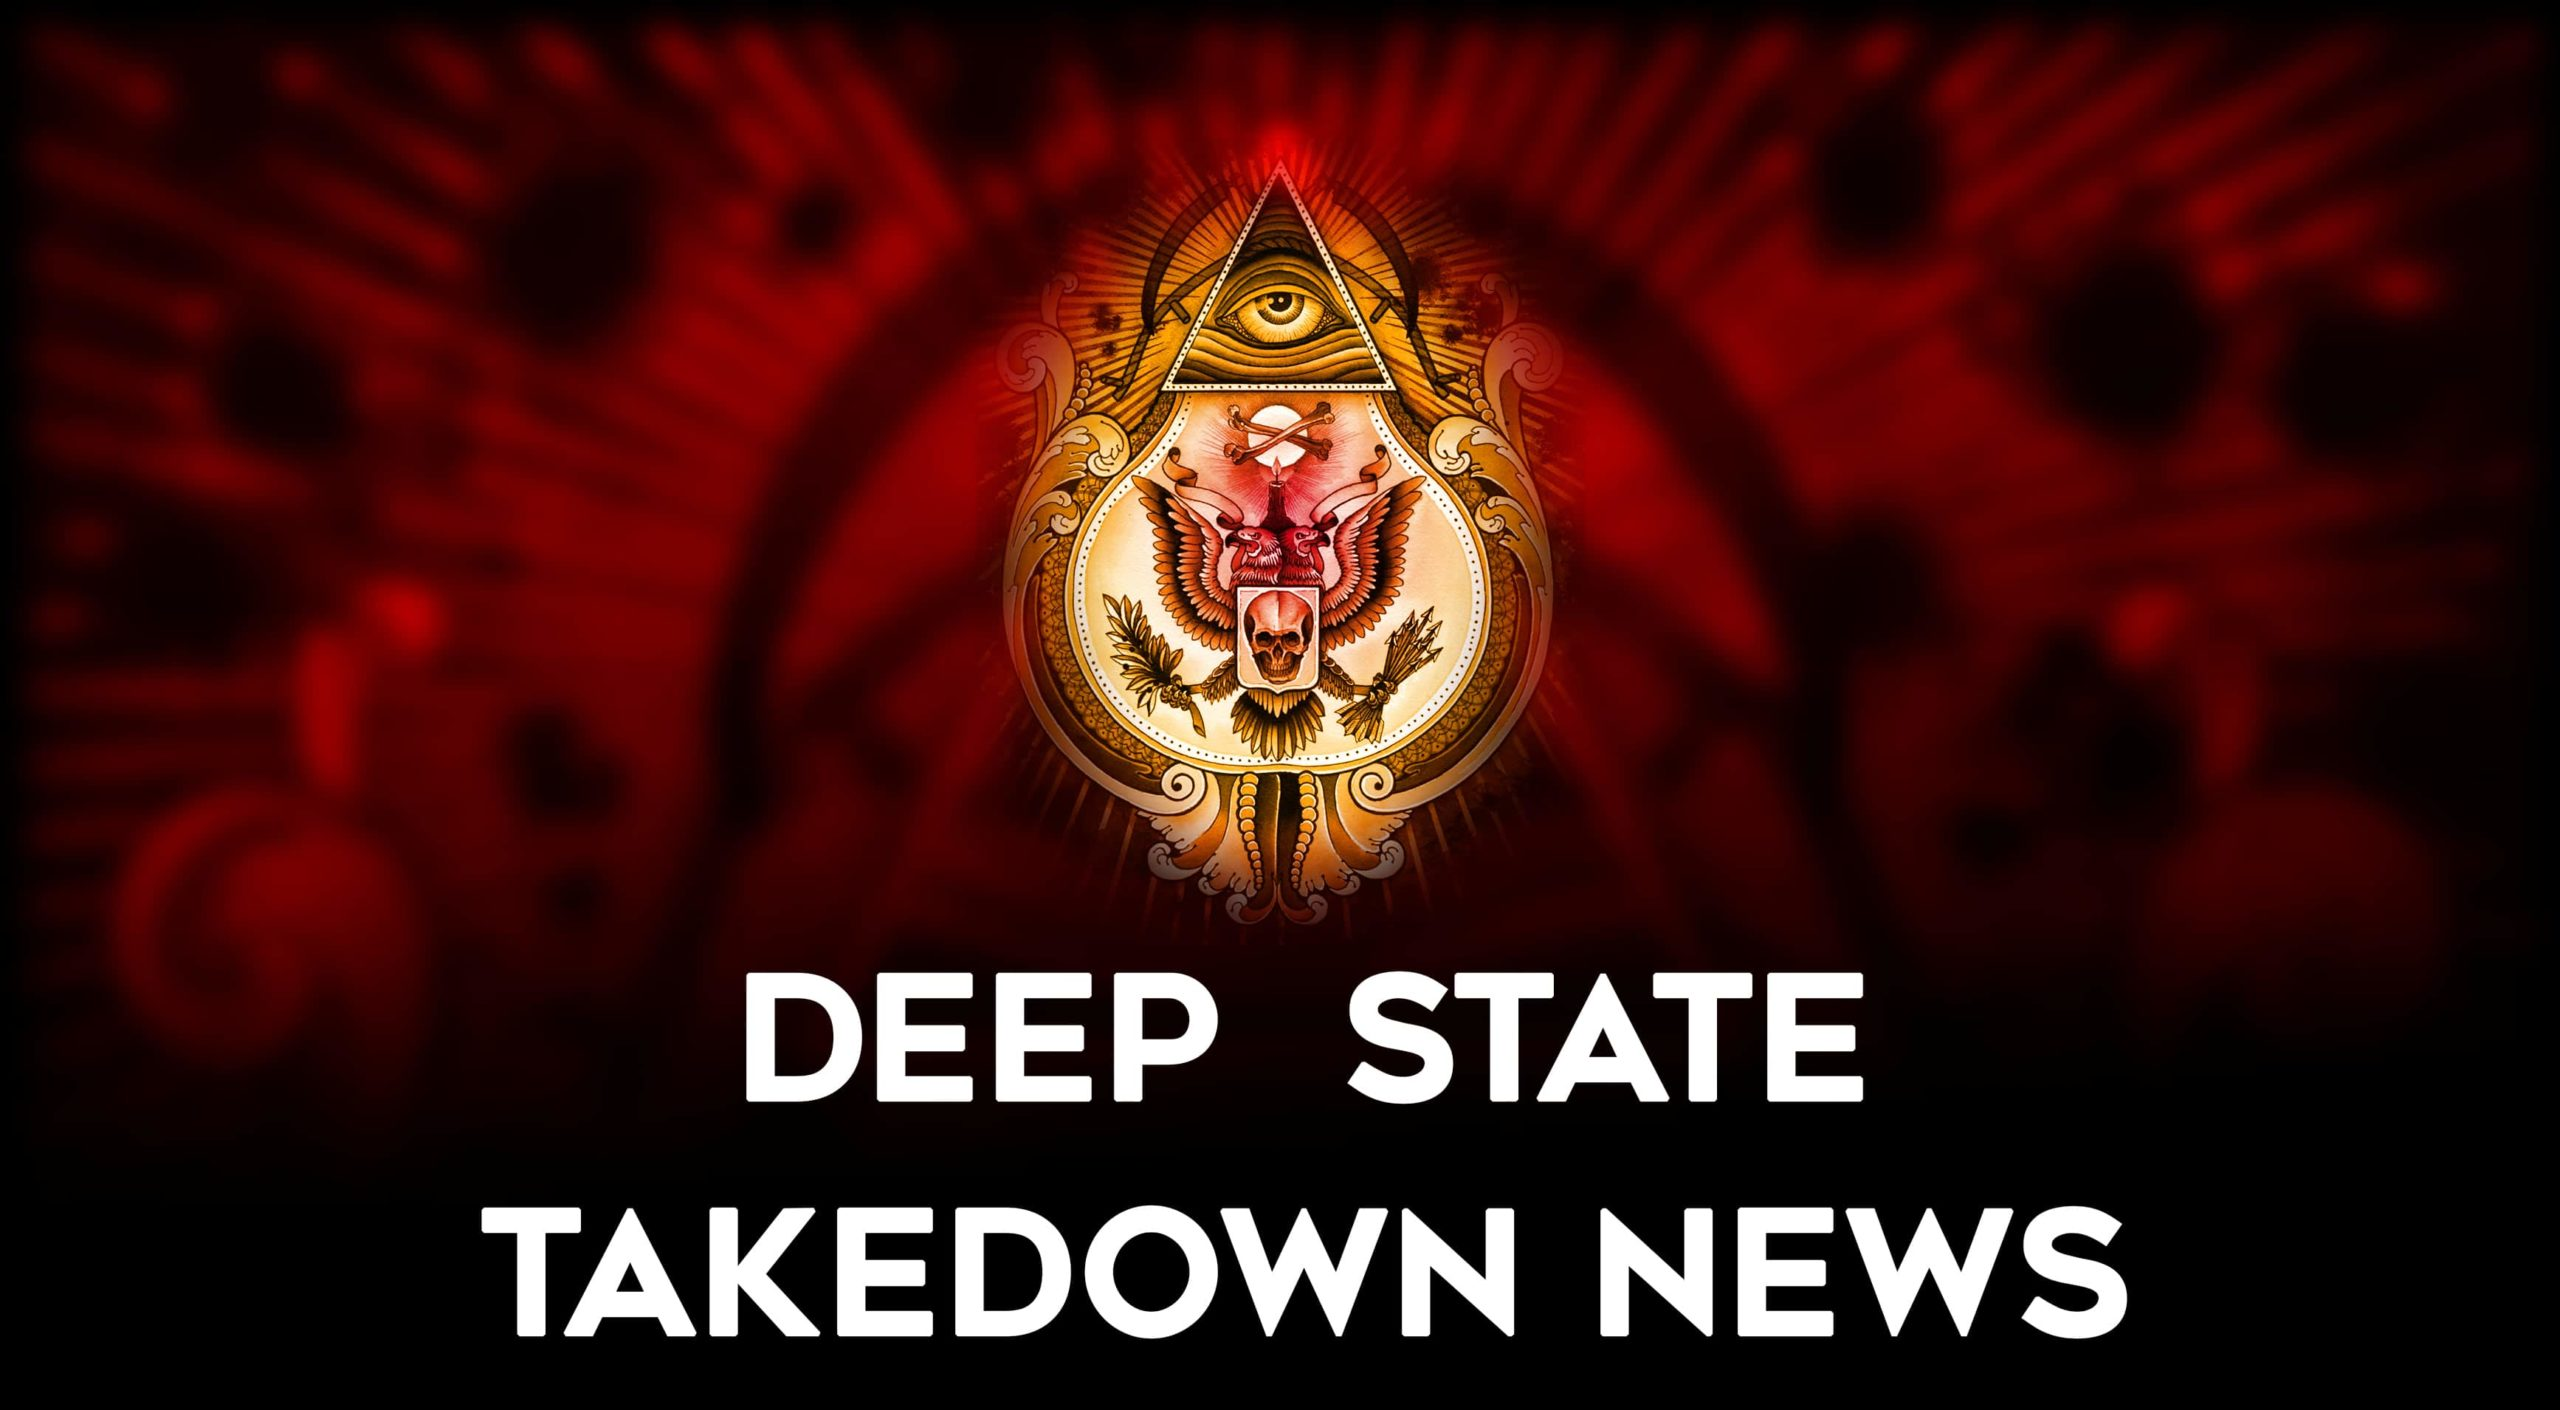 Deep-State-Takedown-News-Redpillnews-scaled.jpg